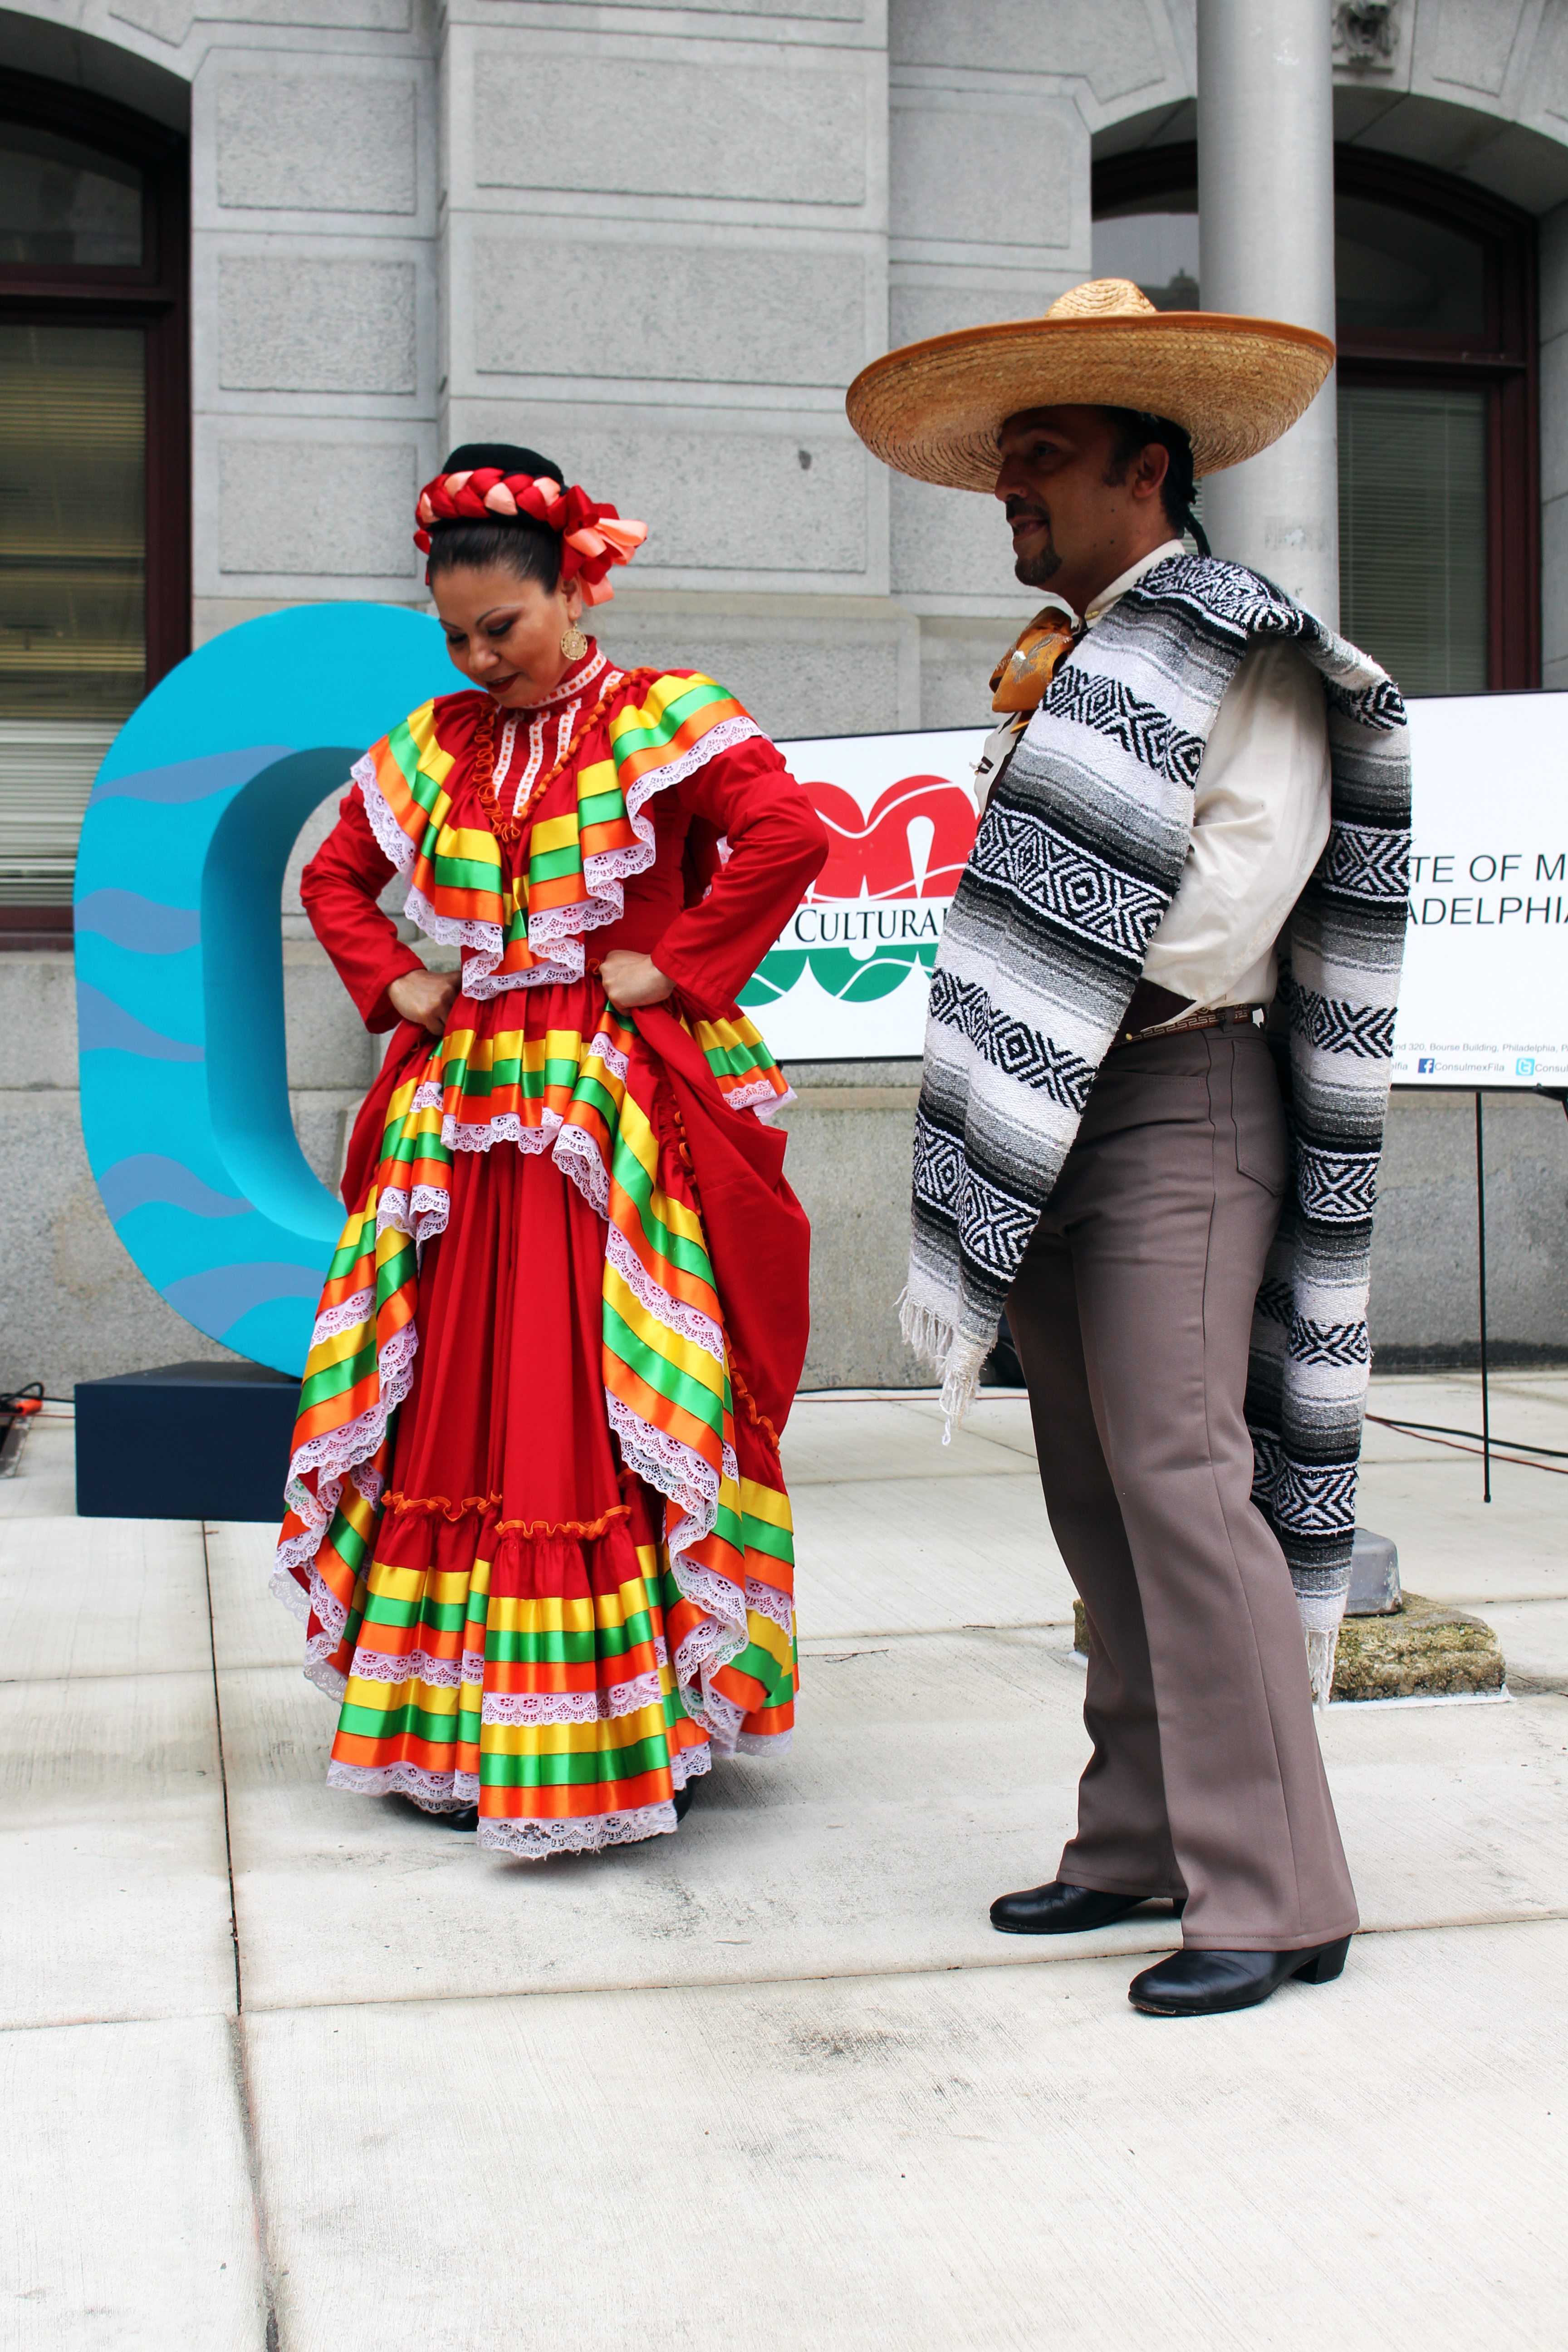 mexican culture speech Objective: to research, write, and deliver a 5 to 7 minute speech explaining a significant aspect of a culturepossible topics include social customs, family traditions, holidays, clothing, food, religious traditions, artifacts, sporting activities, and the like.